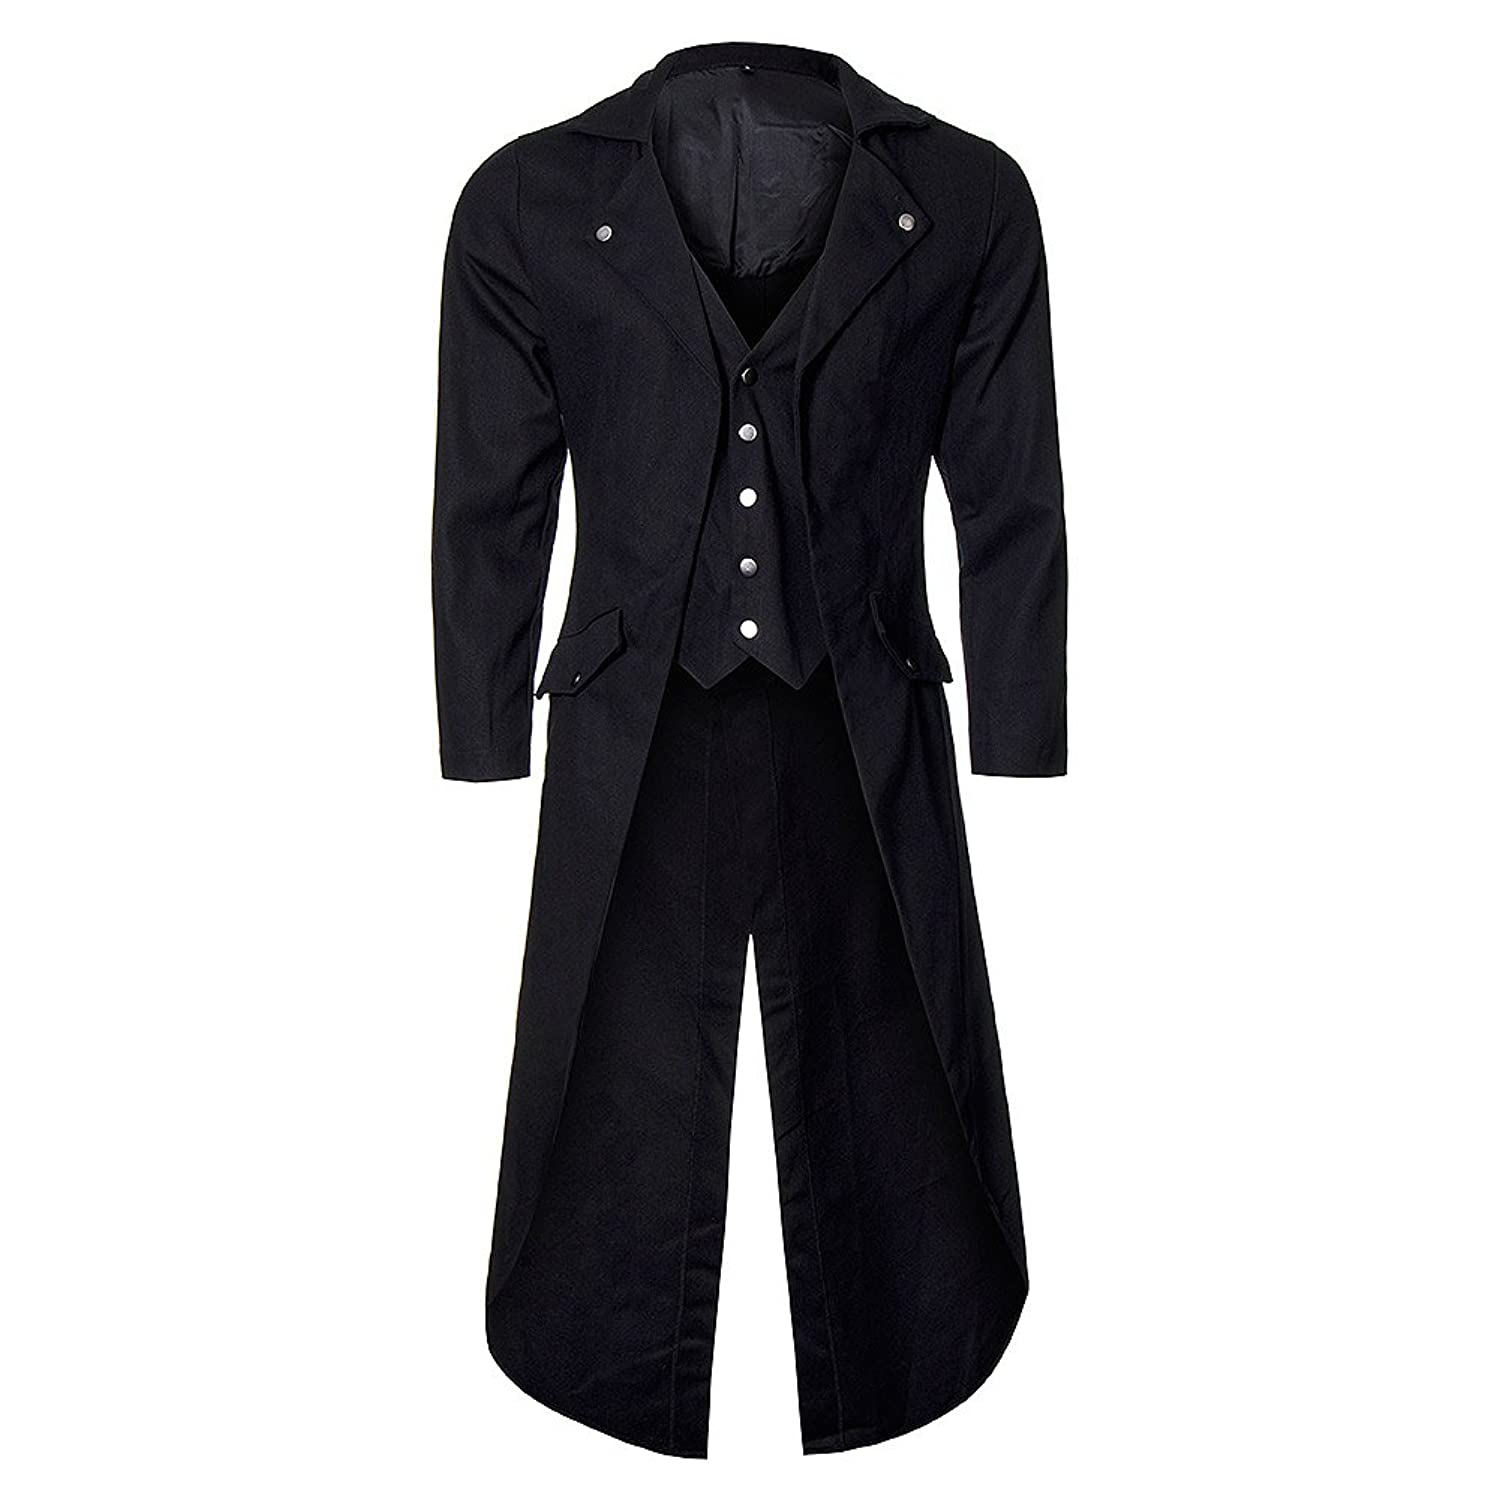 Men's Steampunk Costume Essentials Banned Unisex-adults Frock Tail Coat $99.16 AT vintagedancer.com